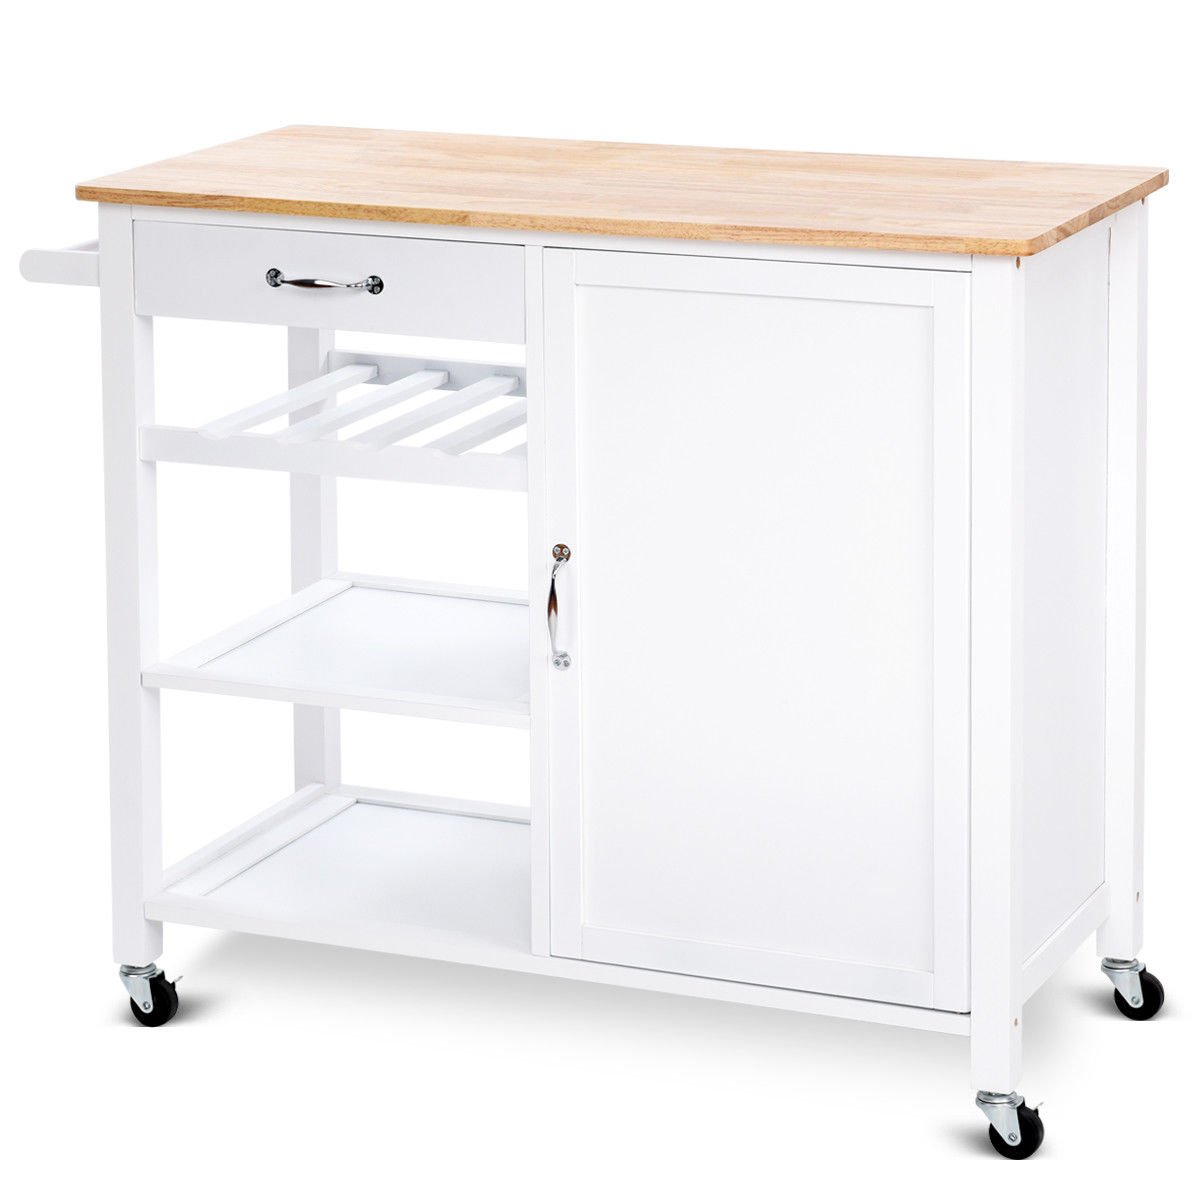 Giantex Kitchen Trolley Cart w/Wheels Rolling Storage Cabinet Wooden Table Multi-Function Island Cart Kitchen Truck (White) by Giantex (Image #6)